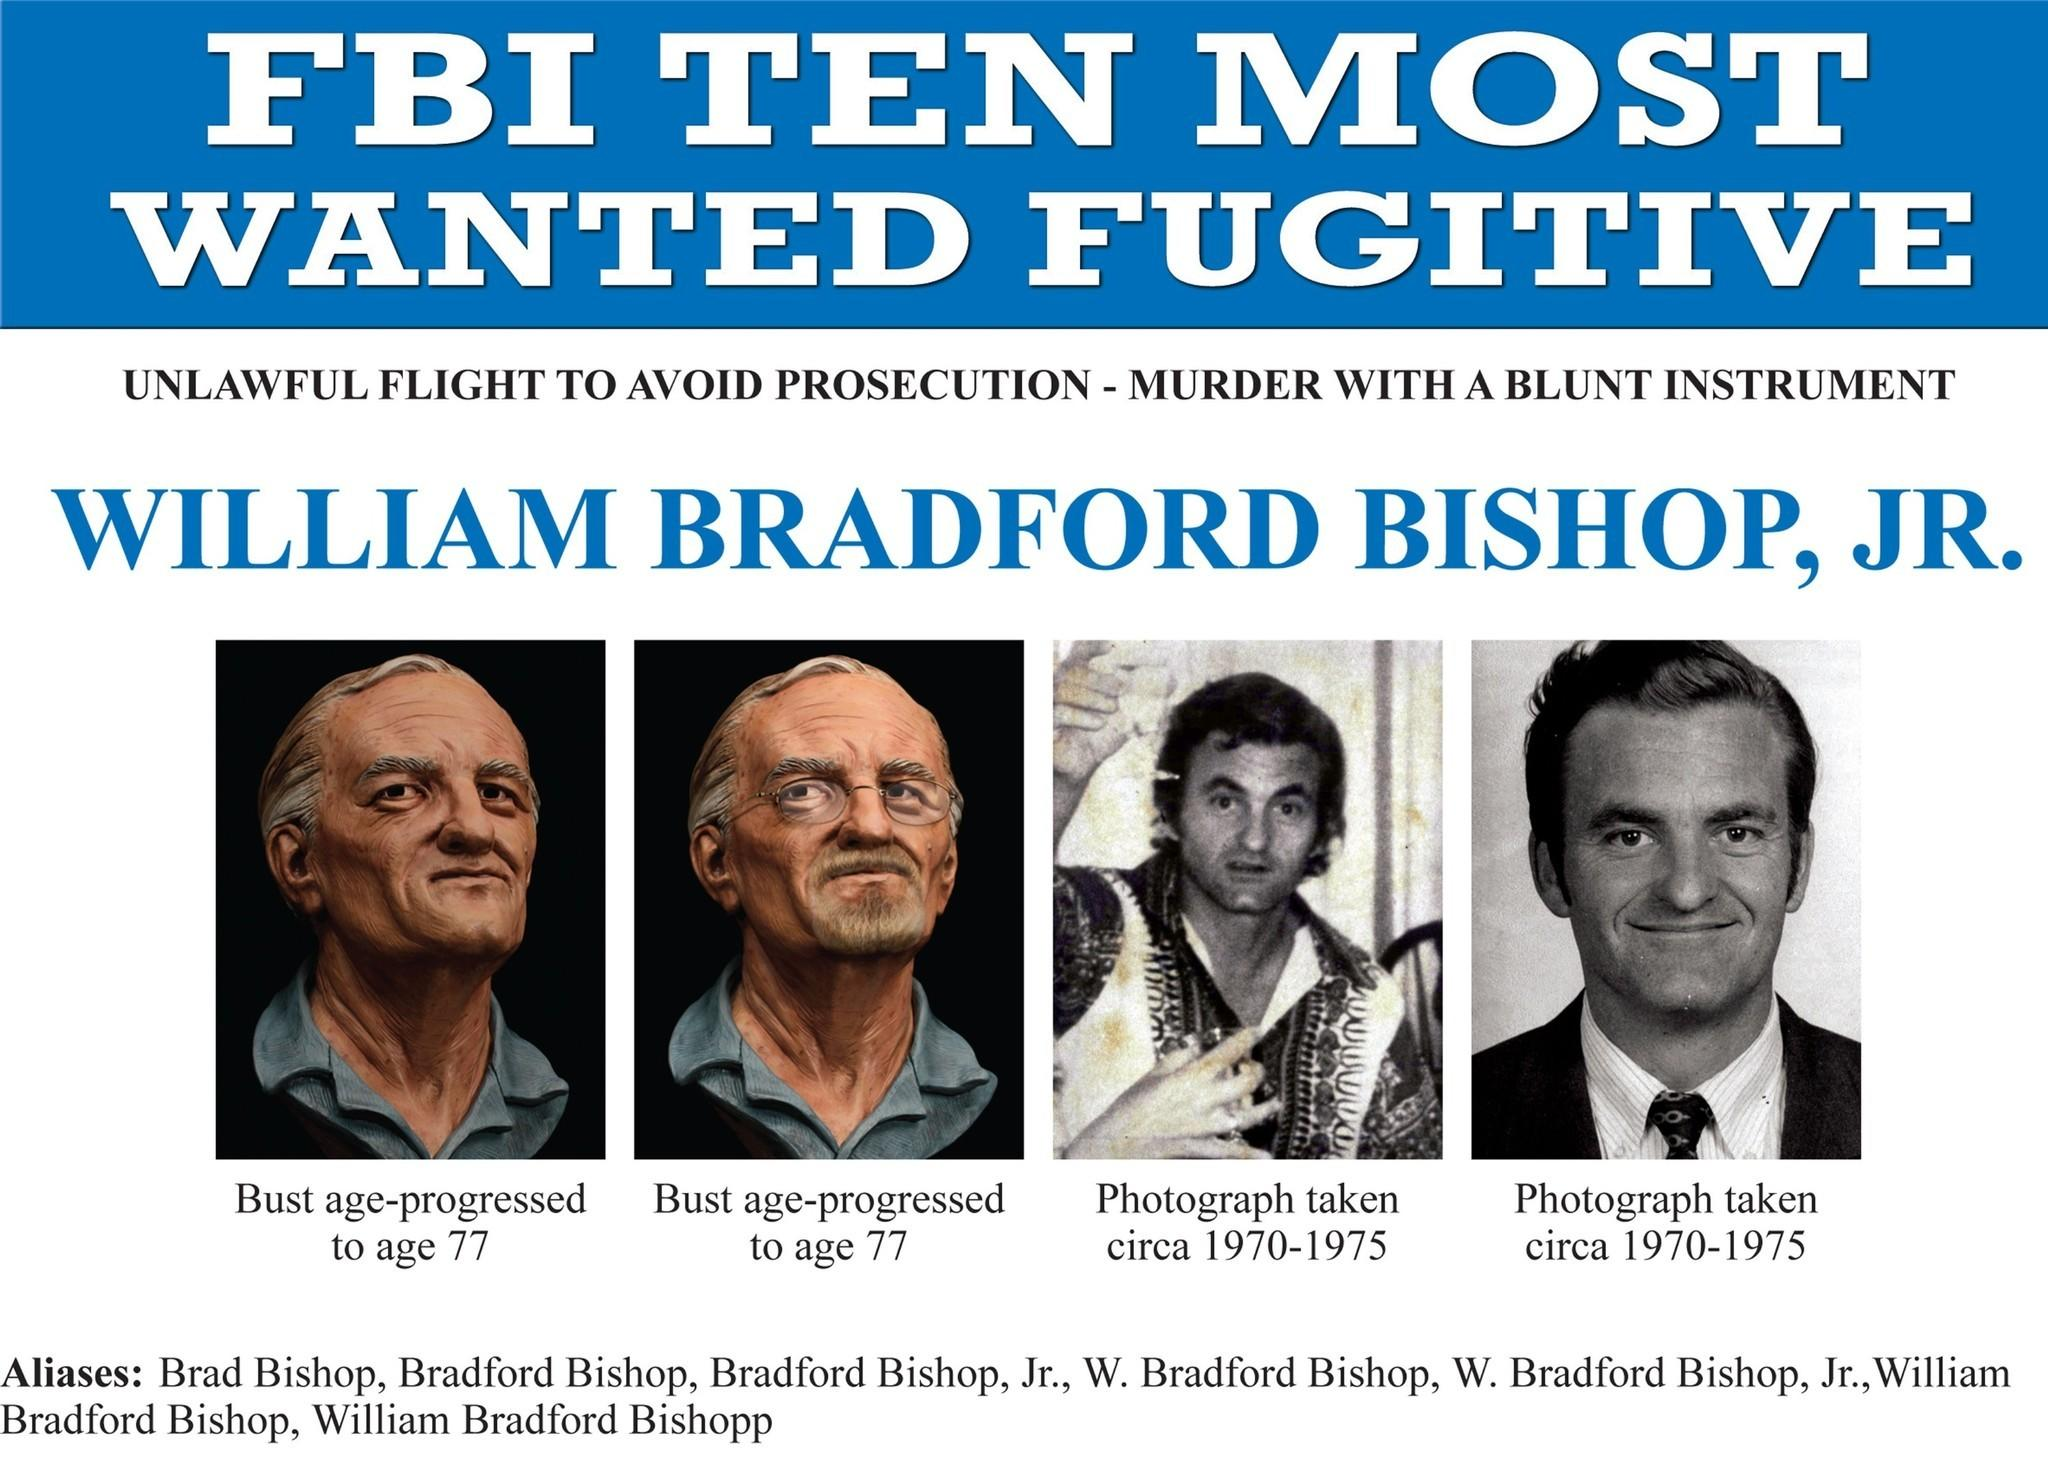 The wanted poster for William Bradford Bishop, Jr.